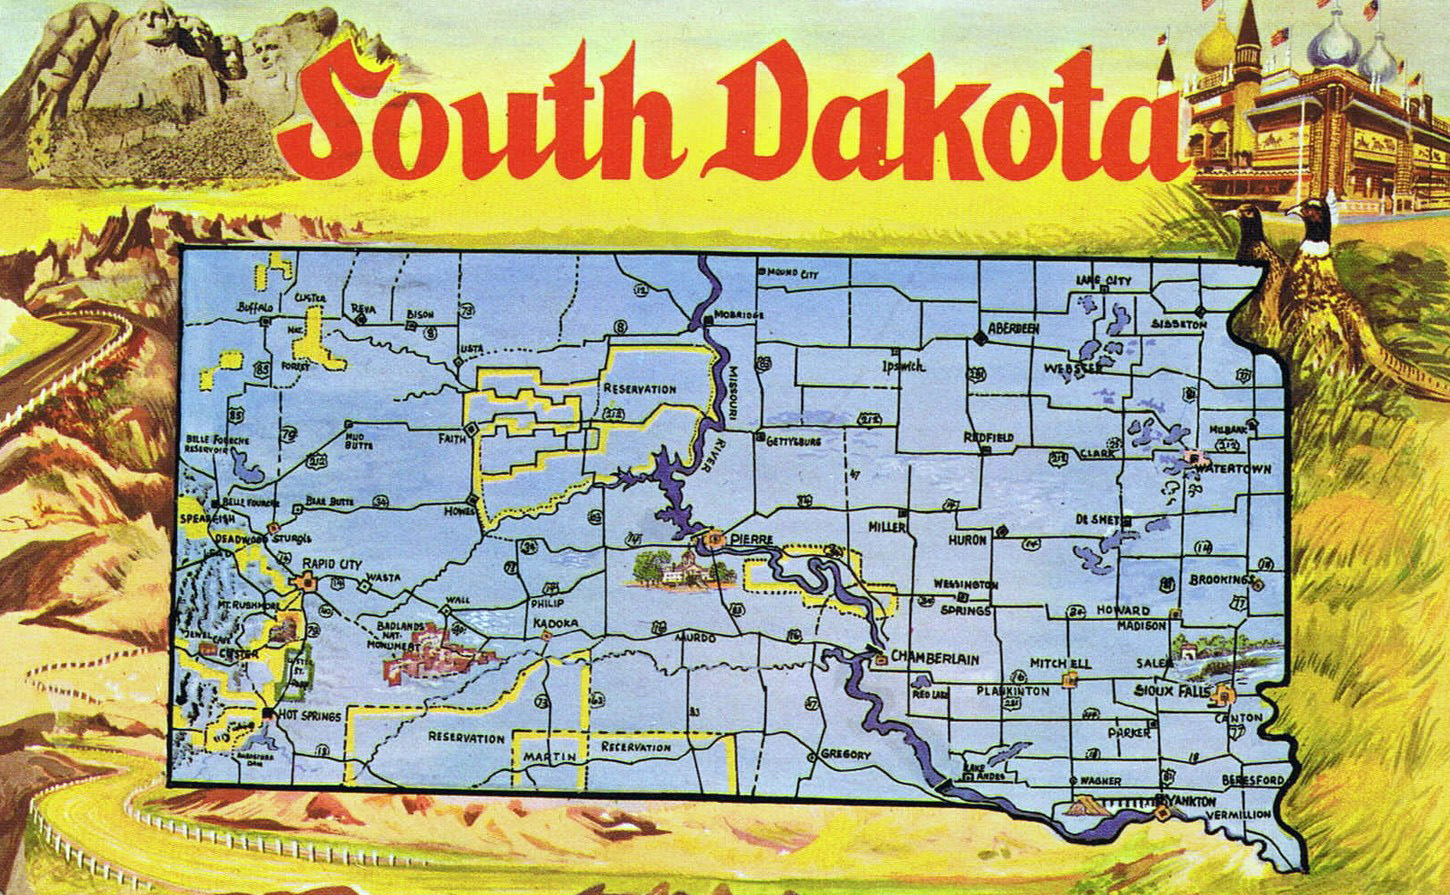 Large Tourist Illustrated Map Of South Dakota State South Dakota - Map of south dakota